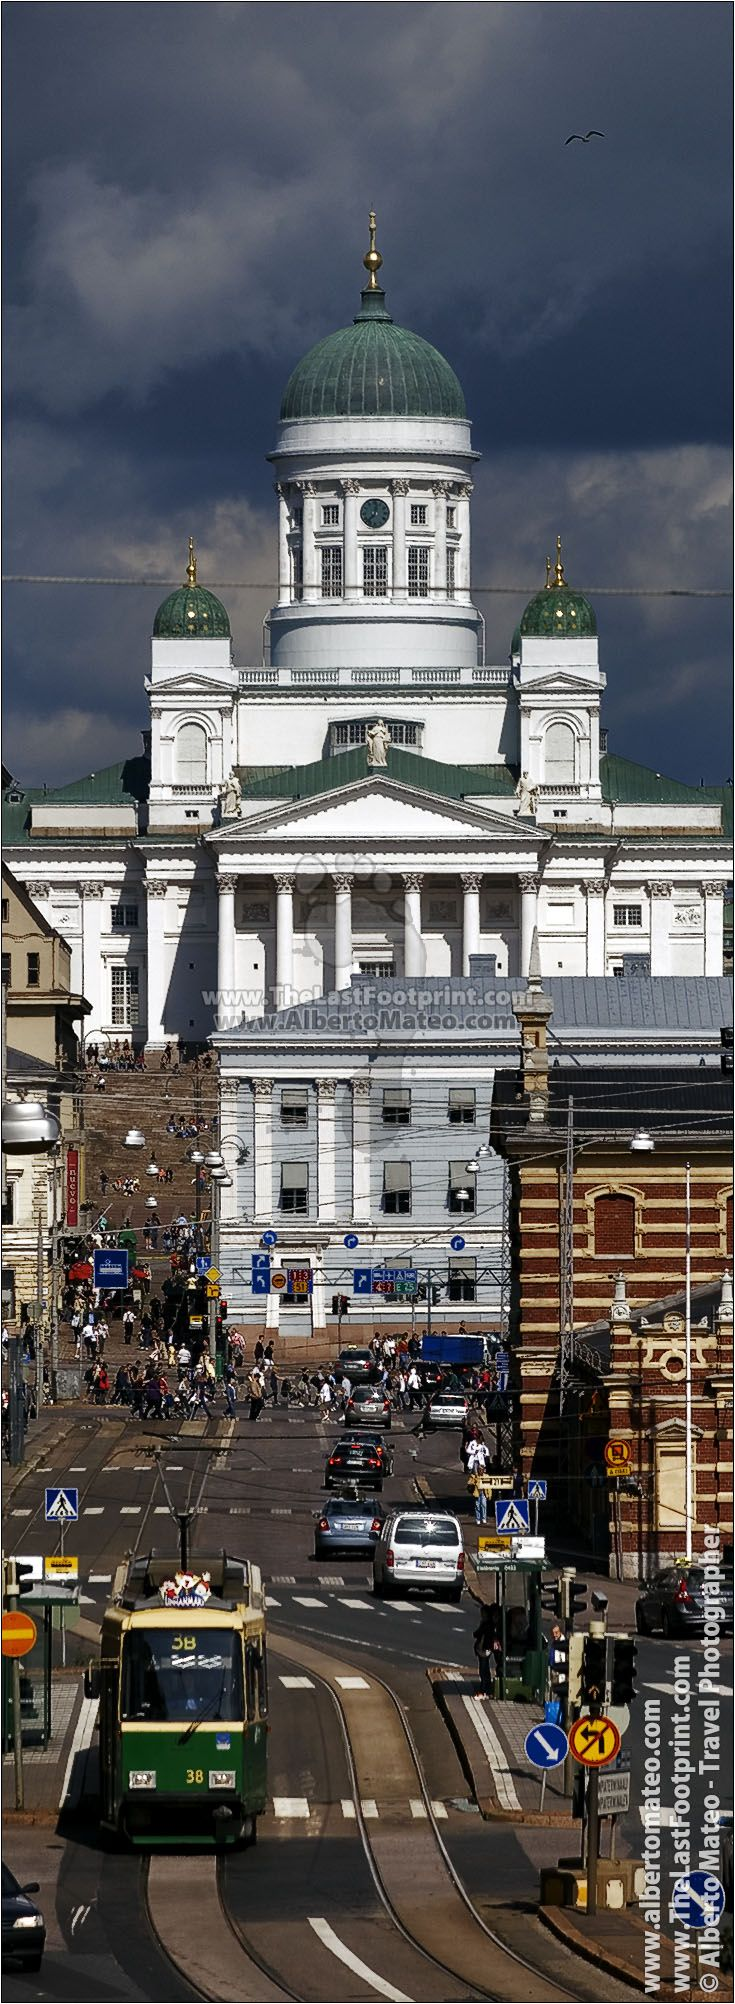 The Cathedral of Helsinki, Finland. Photograph by Alberto Mateo, Travel Photographer.